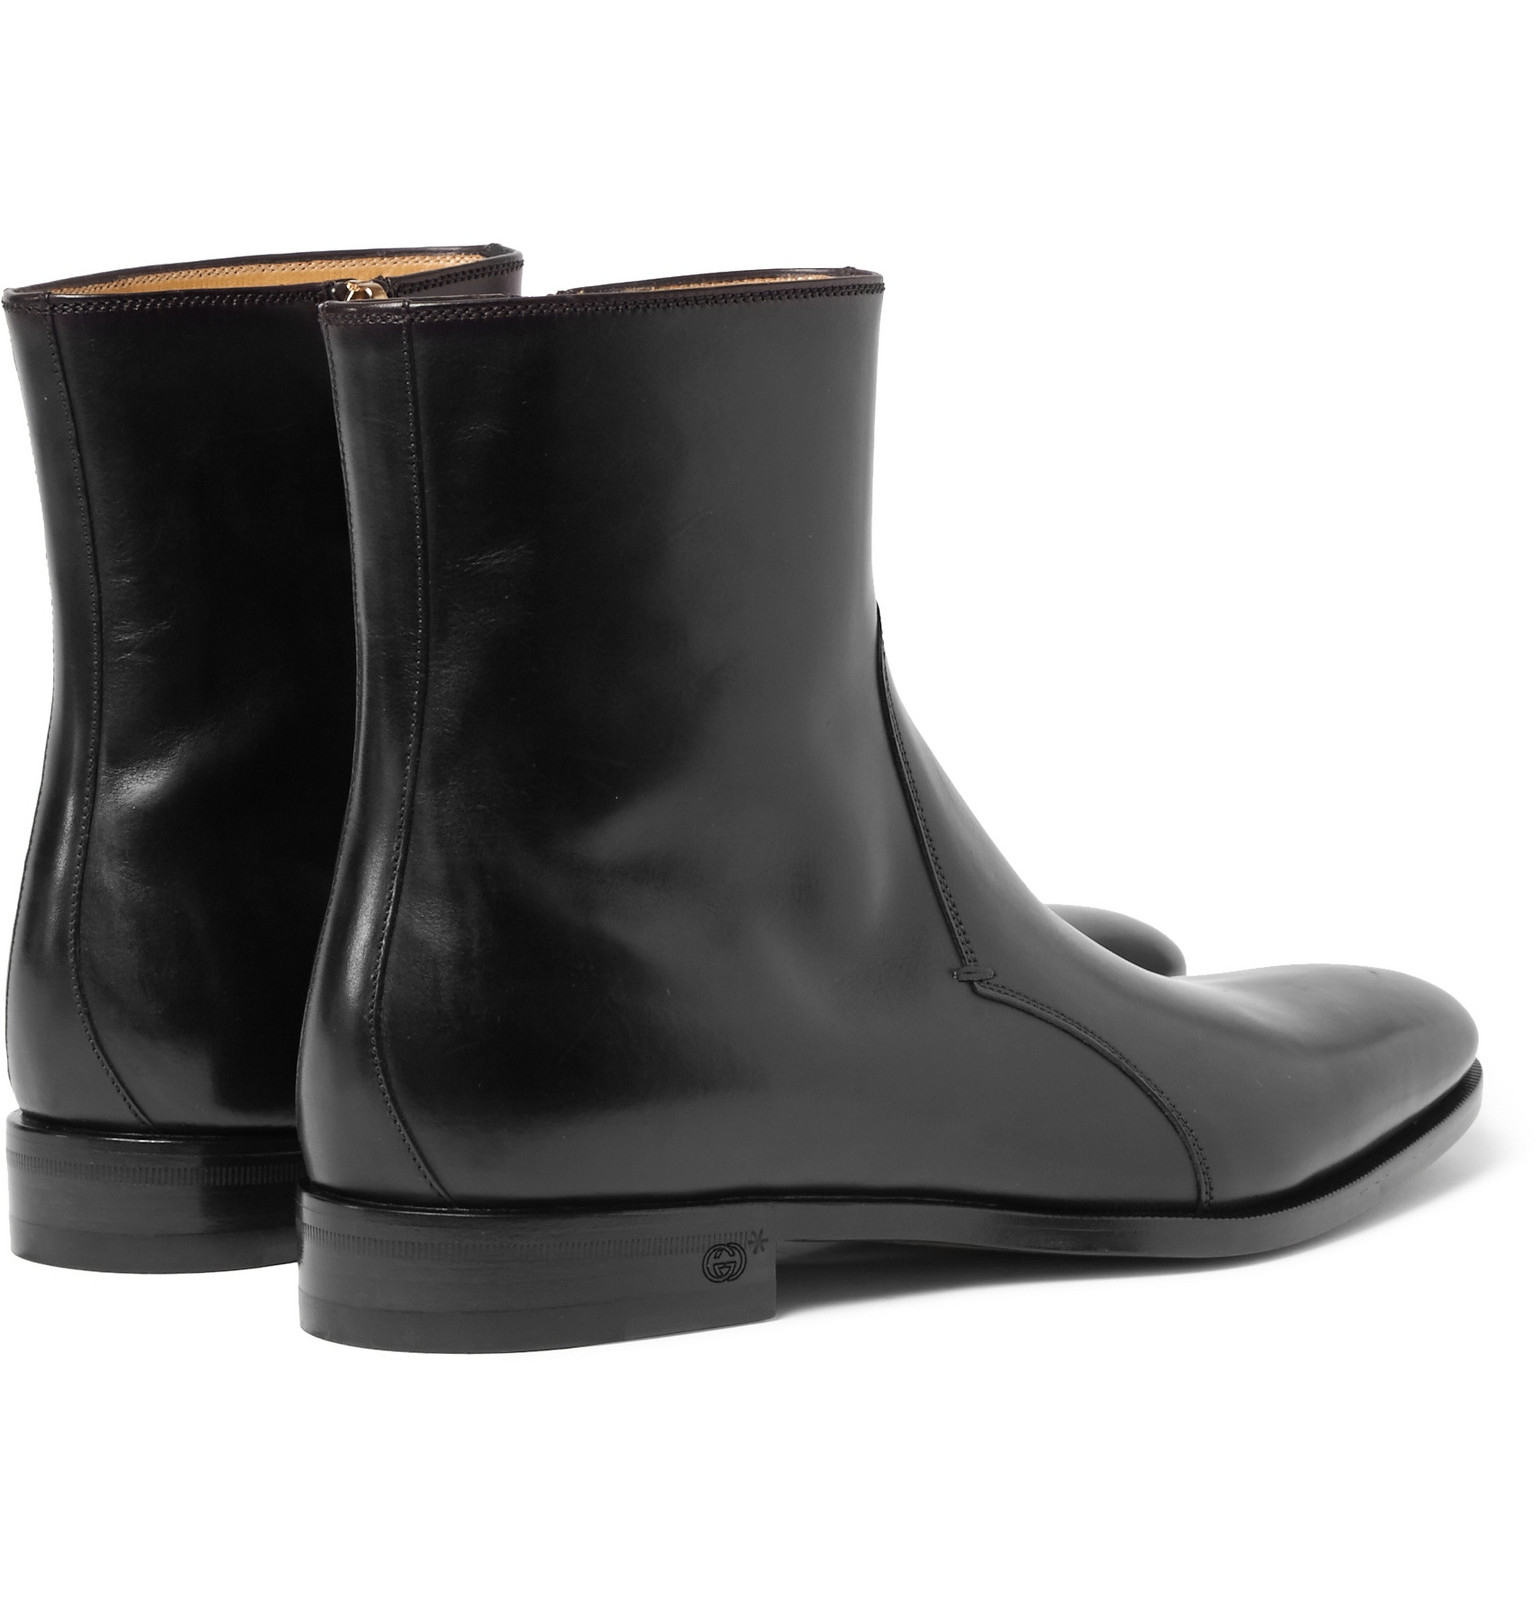 Gucci Leather Chelsea Boots In Black For Men Lyst